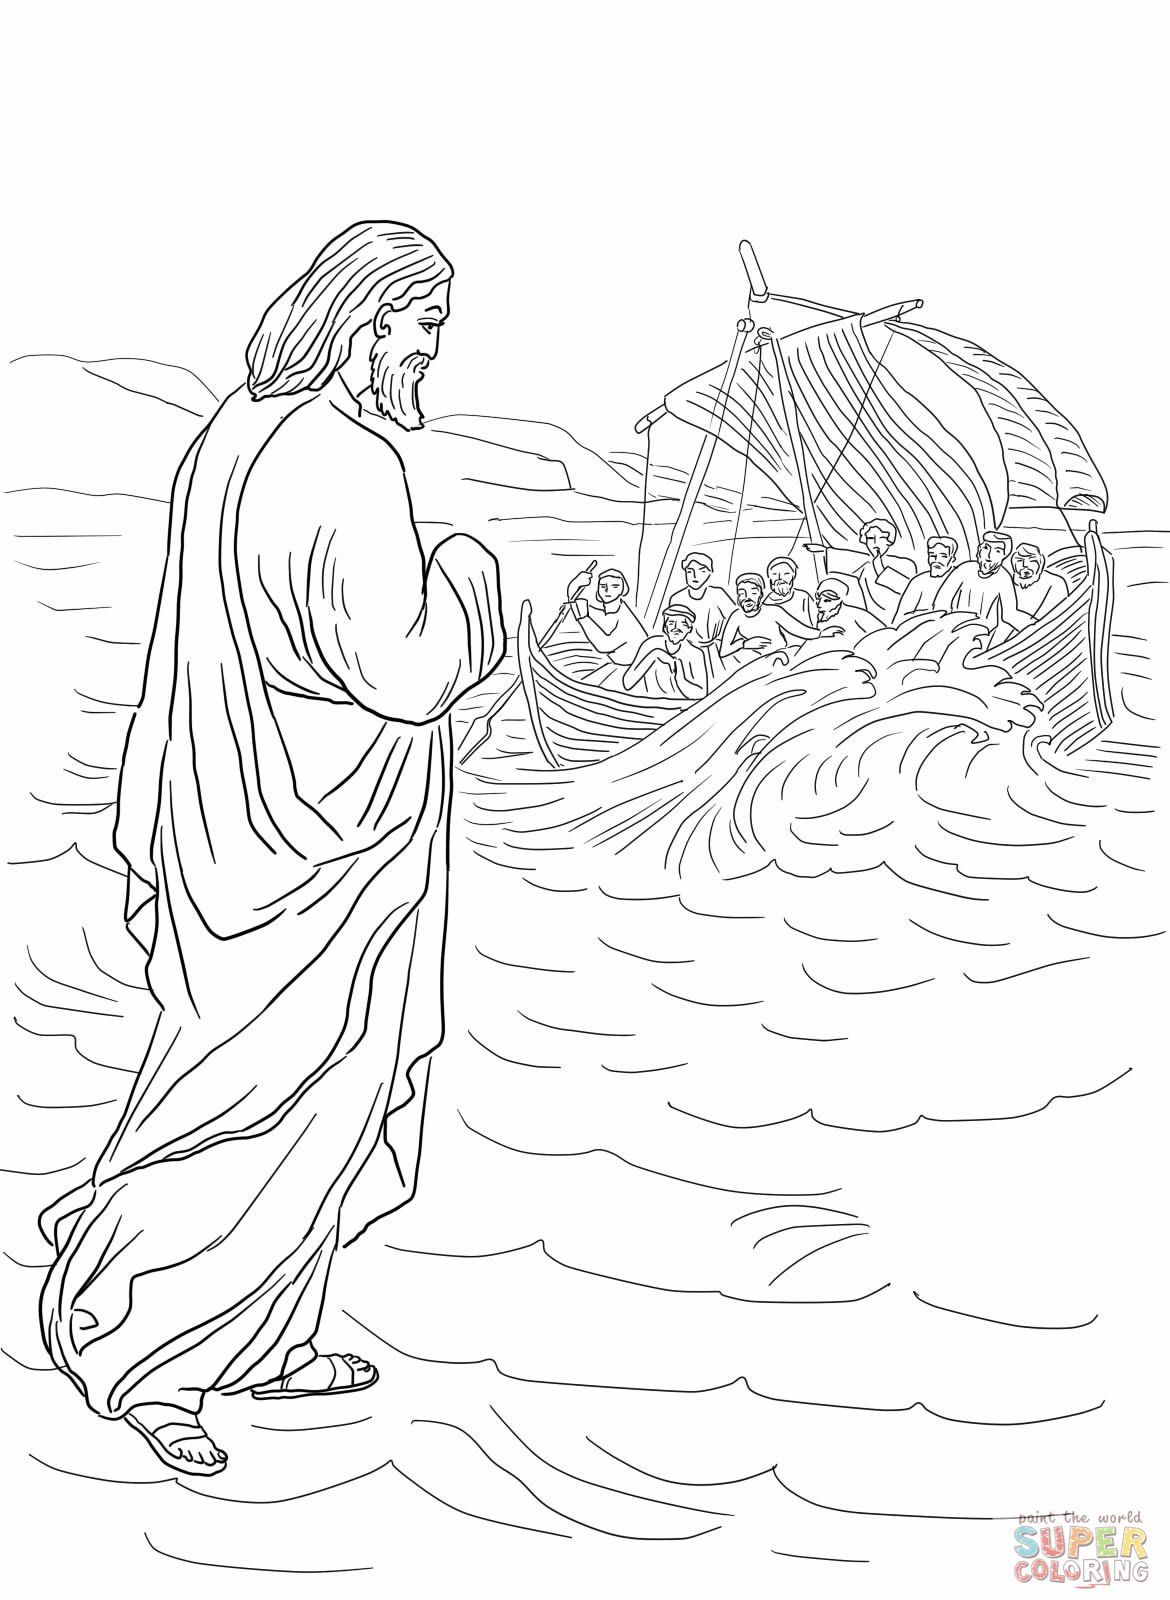 Jesus Walking On The Water Coloring Page From Mission Period Category Select 27237 Printable Crafts Of Cartoons Nature Animals Bible And Many